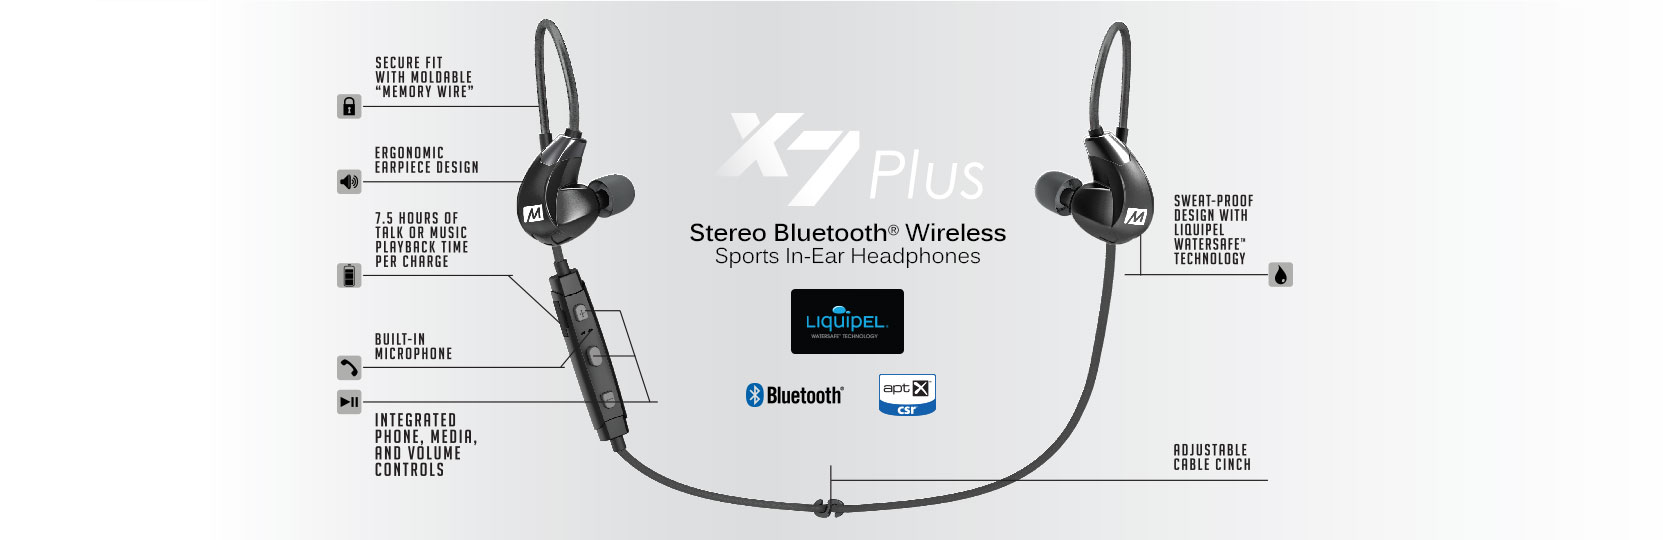 X7 Plus Stereo Bluetooth Wireless Sports In Ear Hd Headphones With Wiring Aac Plug Engineered For Active Lifestyles The Combines High Definition Sound Secure Locked Fit Sweat Resistant Design And Built